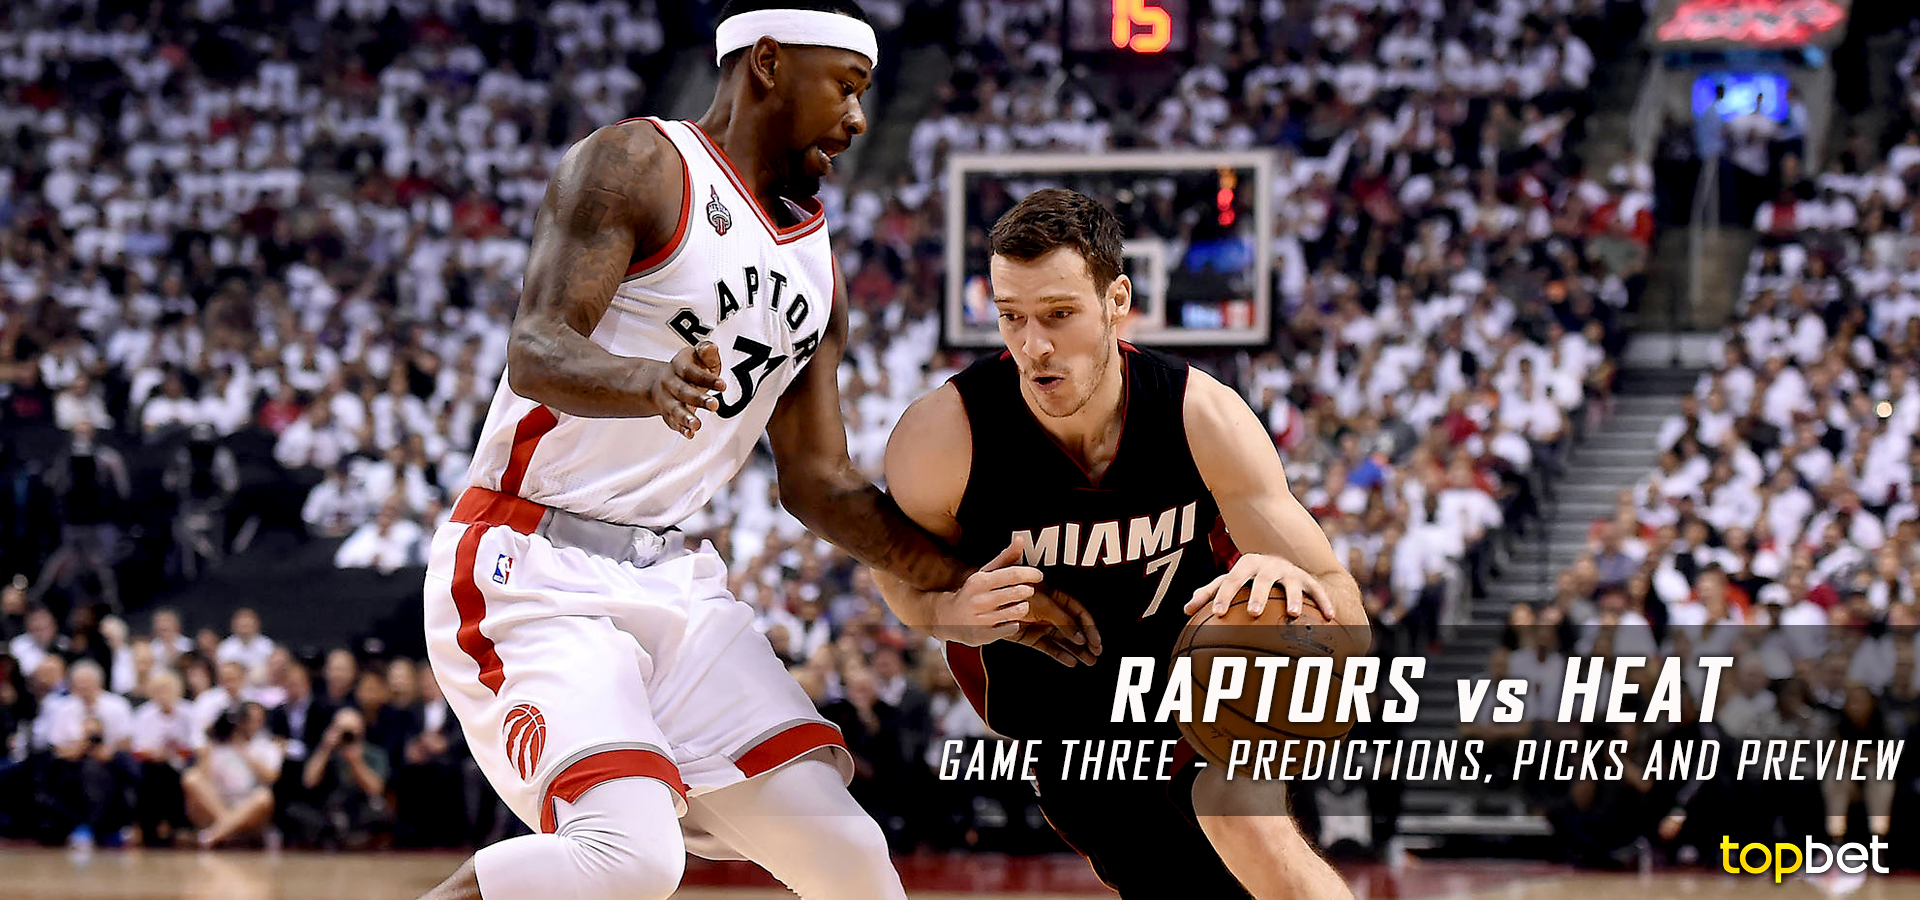 Raptors News: Raptors Vs Heat Series Game 3 Predictions, Picks And Odds